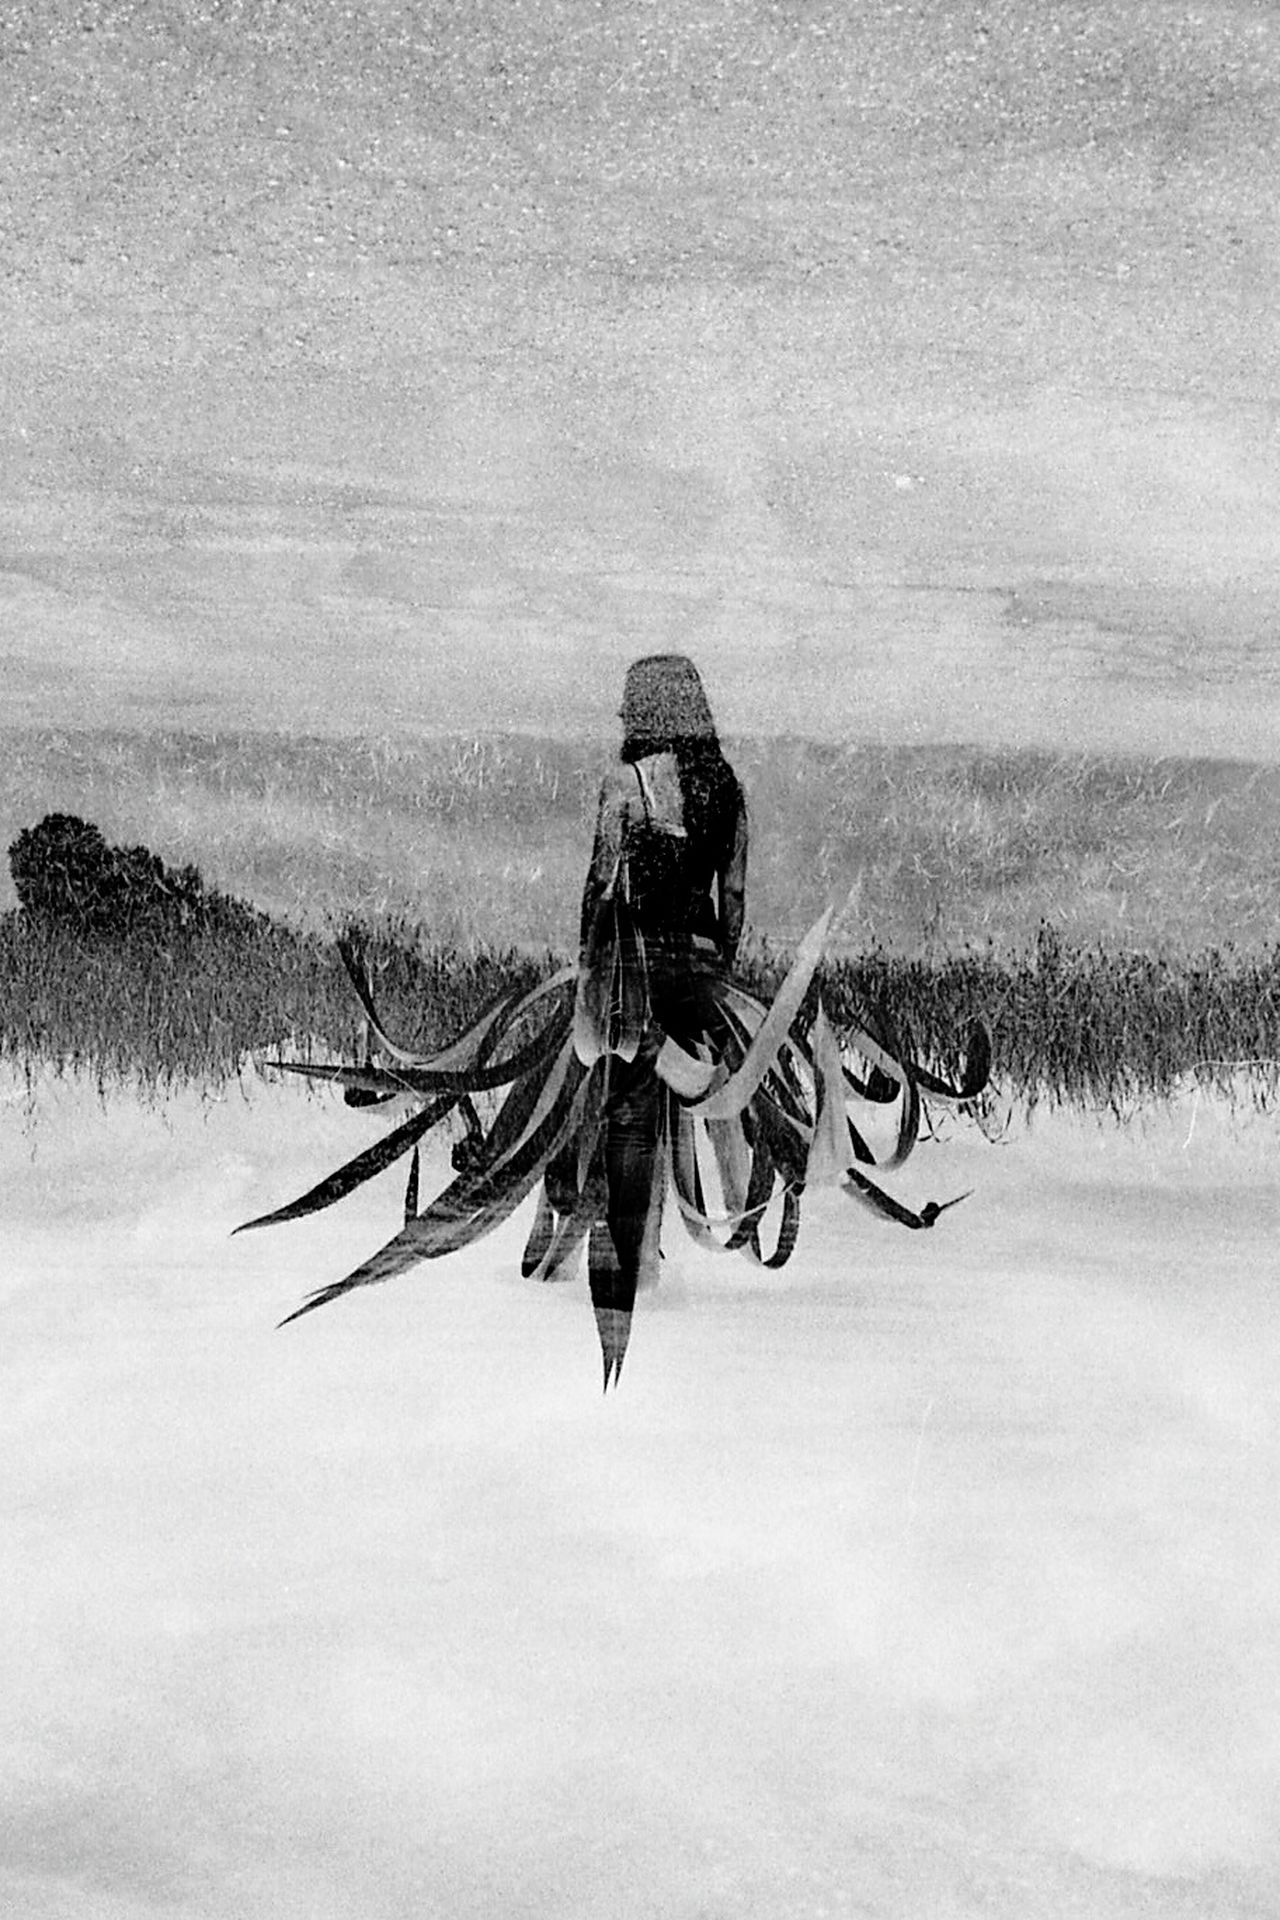 Hydra. Nikon woman portrait EyeEm Nature Lover EyeEm gallery EyeEm Selects doubleexposures BW Collection PortraitPhotography filmisalive filmisbetter people_bw black and white collection Staring At The World EyeEm Best Shots Ishootfilm Analogue Photography People And Places. Double Exposure filmisnotdead portraits of EyeEm The Portraitist - 2017 EyeEm Awards filmisawesome The Great Outdoors - 2017 EyeEm Awards blackandwhite agave plant EyeEmNewHere Breathing Space The Week on EyeEm mix yourself a good time